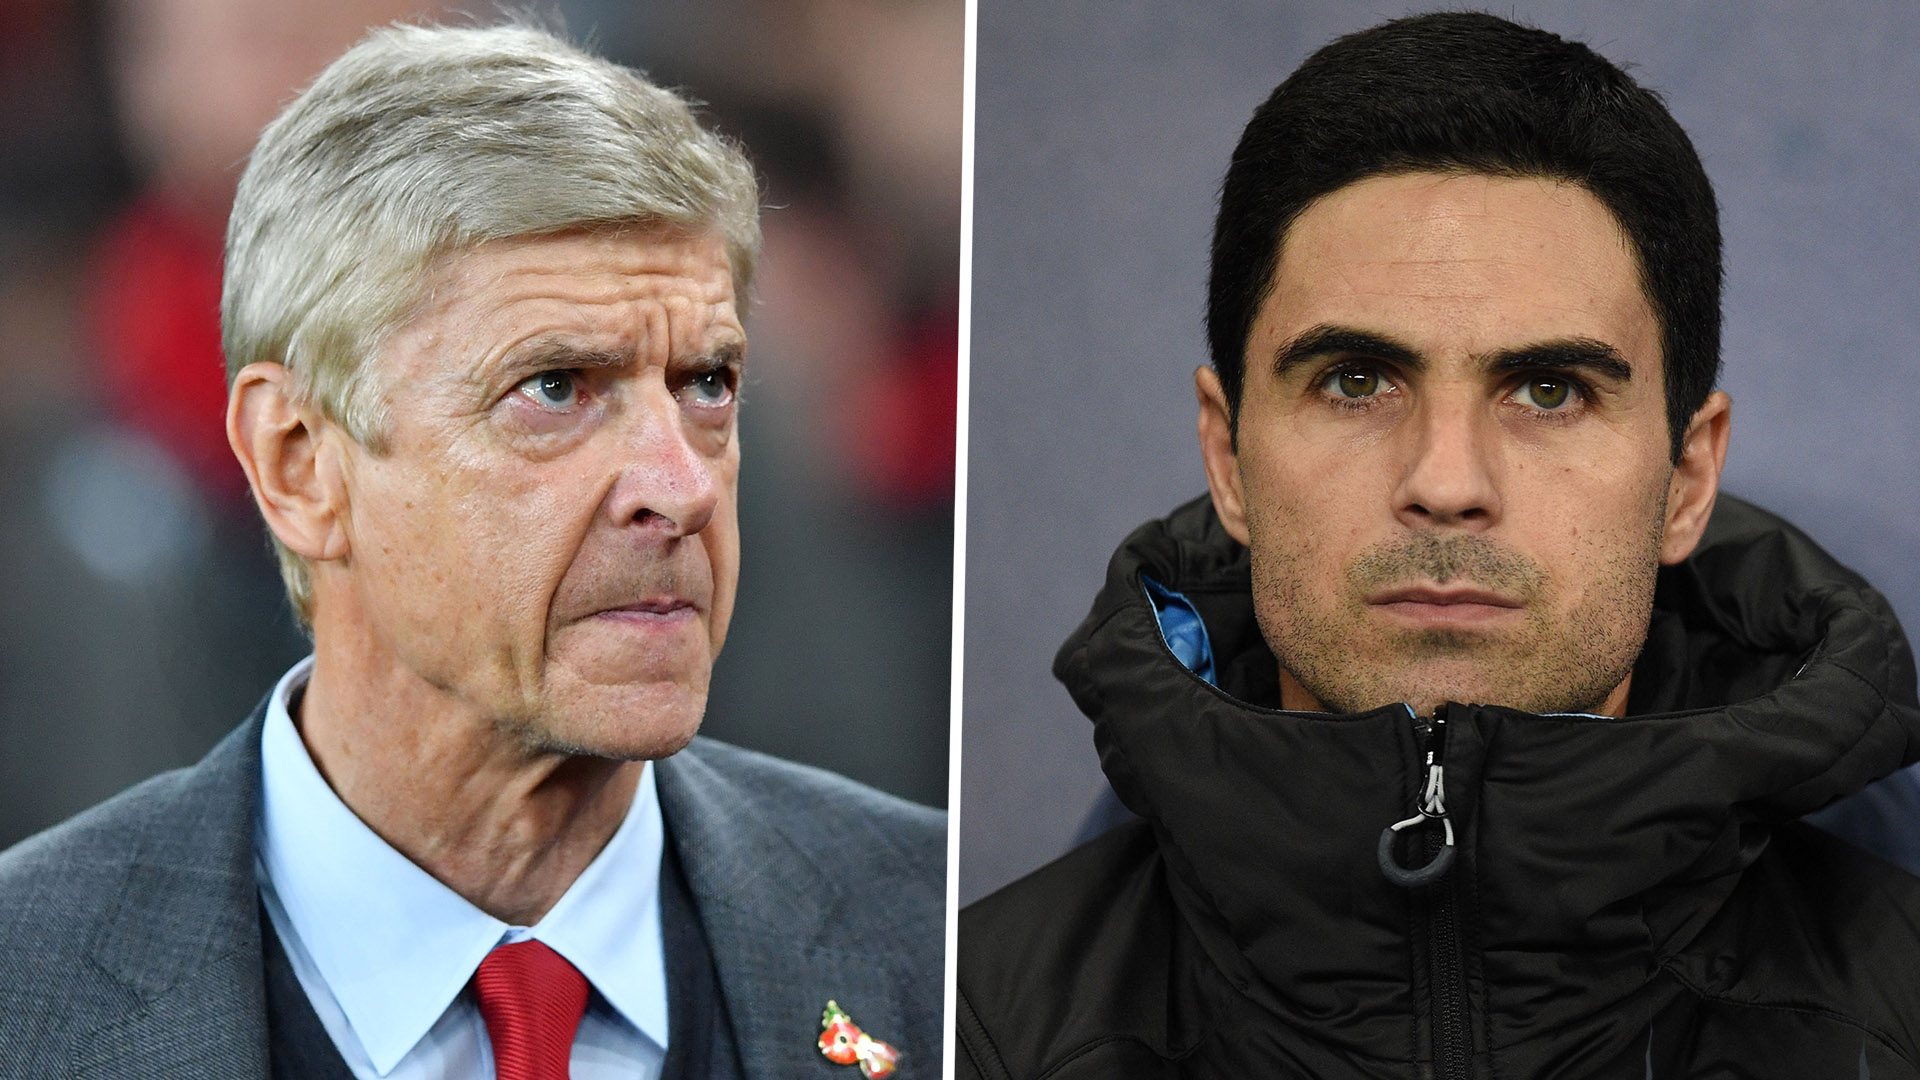 'Arteta can be the next Wenger but will he get time?' – Clichy questions Arsenal transition from assistant to manager